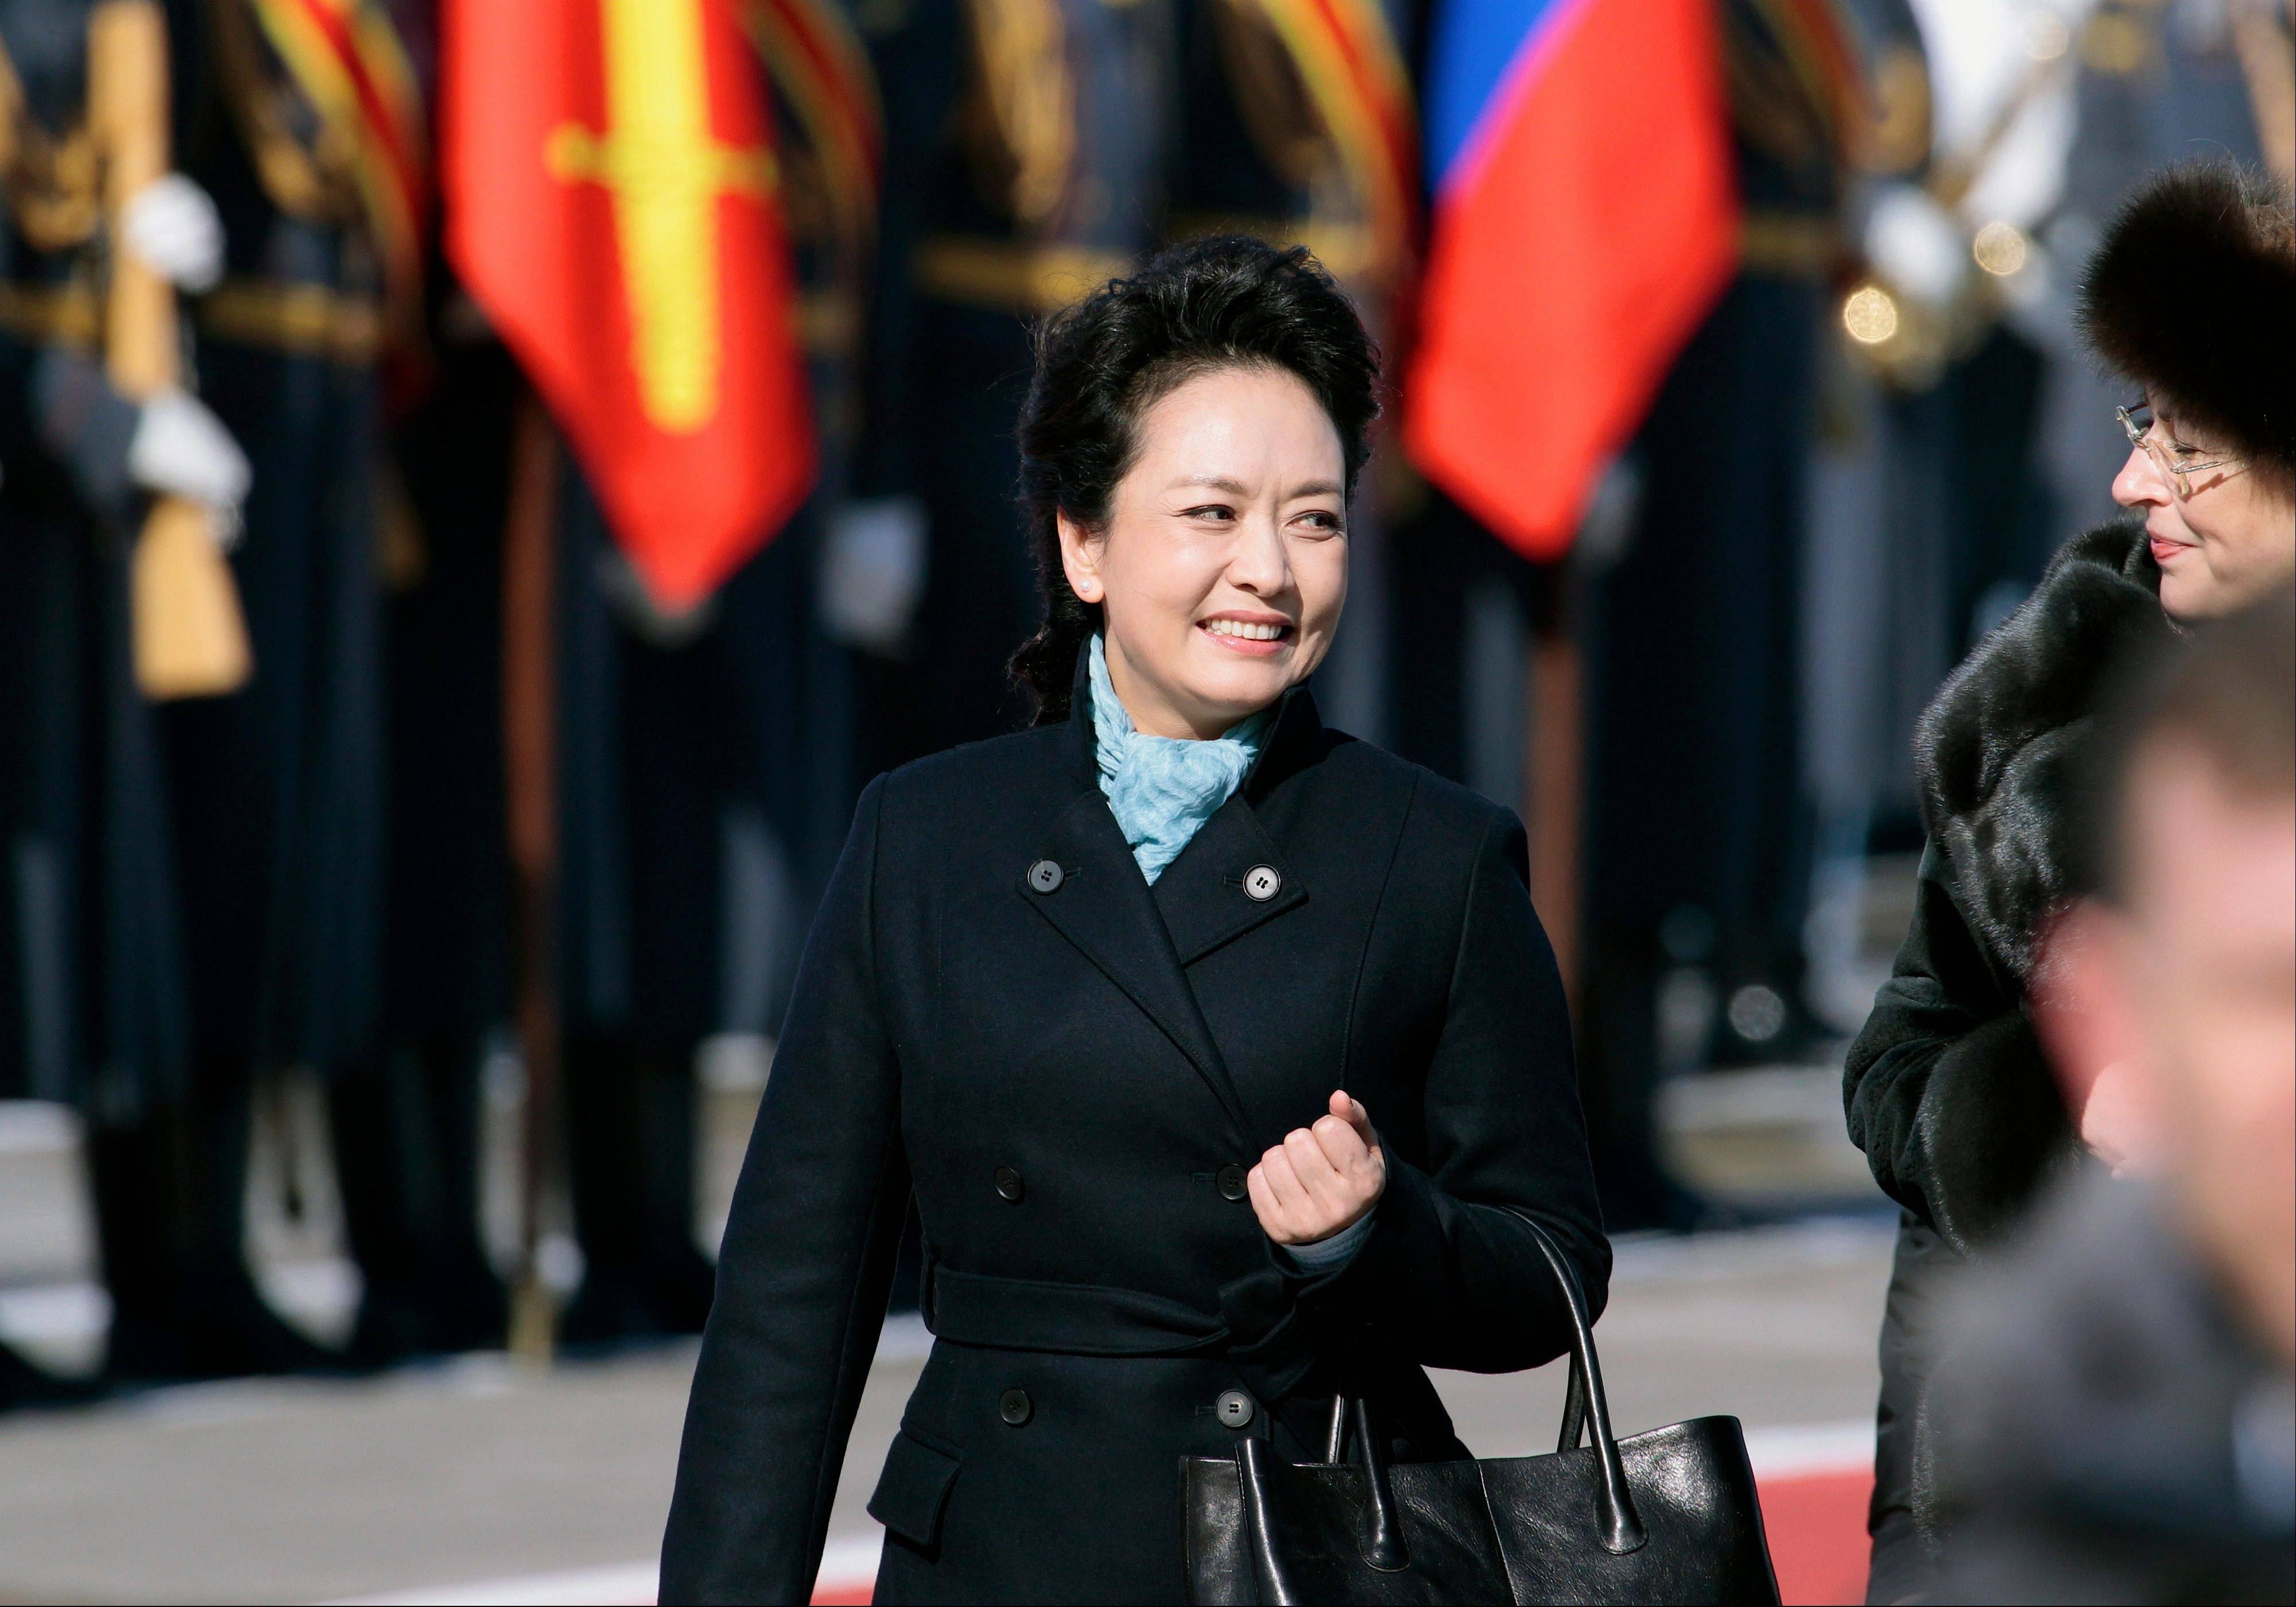 In this March 22, 2013 file photo, Chinese President Xi Jinping�s wife Peng Liyuan smiles after arriving at the government airport Vnukovo II, outside Moscow, Russia. New Chinese first lady Peng is emerging as Chinese diplomacy�s latest star. A well-known performer on state television, the glamorous Peng was featured prominently on Sunday�s state media coverage of President Xi Jinping�s activities in Russia. The visit is Xi�s first since assuming the presidency earlier this month.